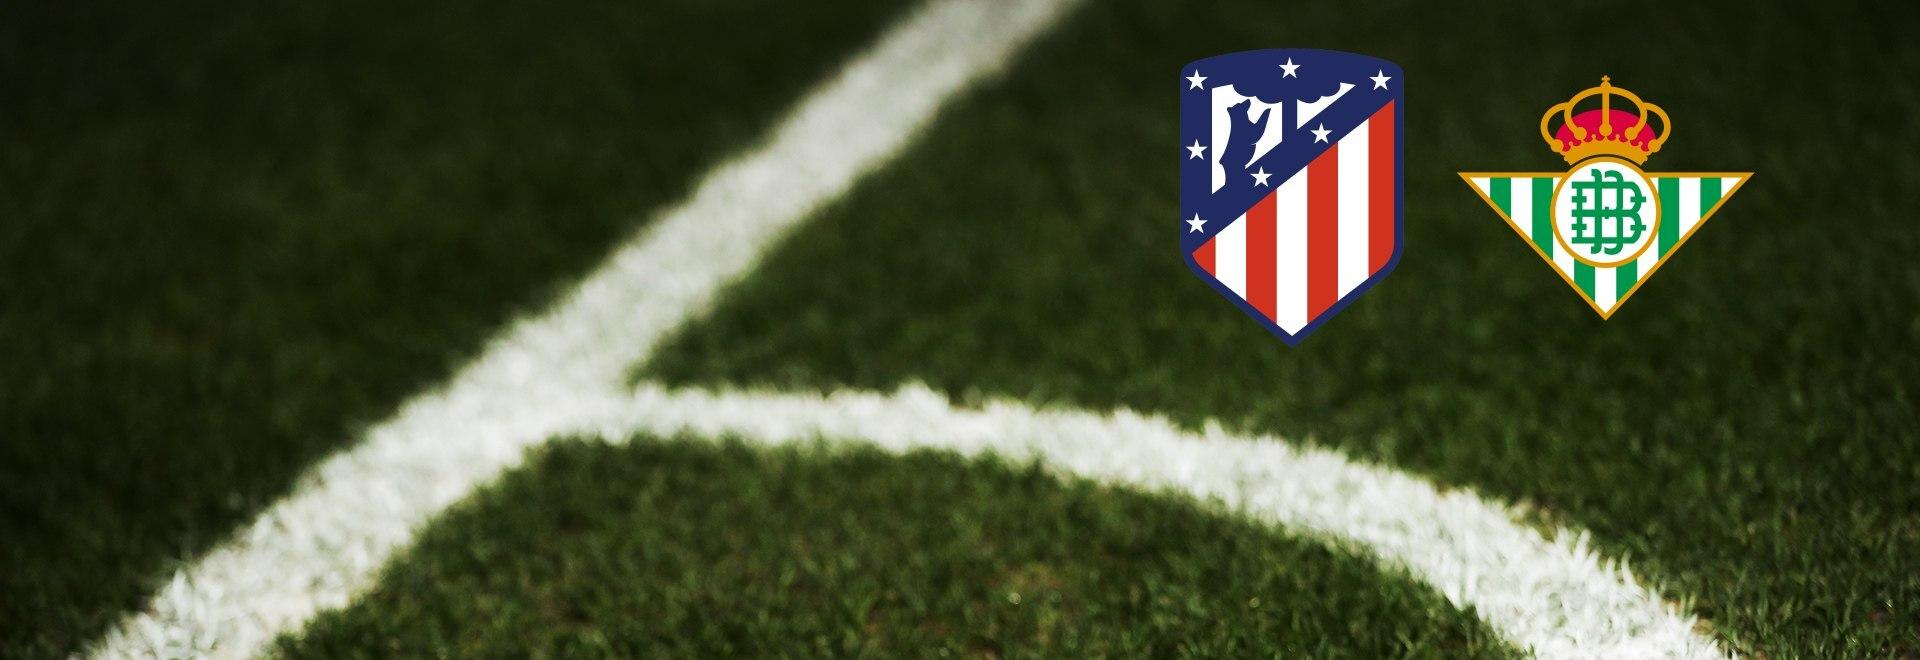 Atletico Madrid - Betis. 7a g.